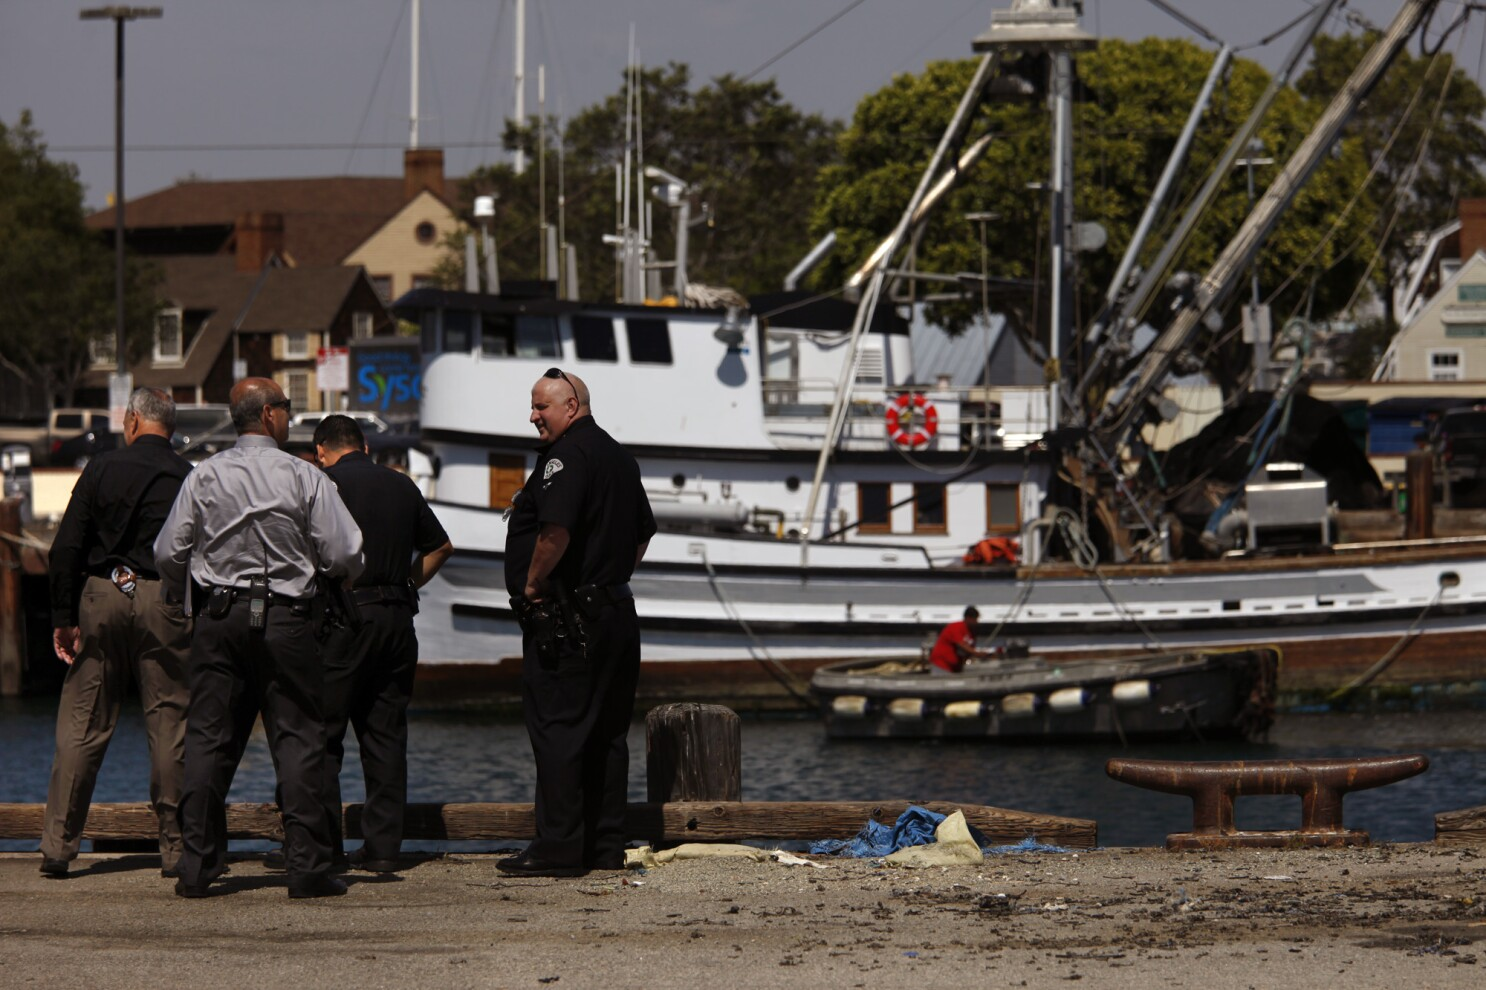 Murder charges filed against father whose car went off San Pedro wharf, killing sons - Los Angeles Times